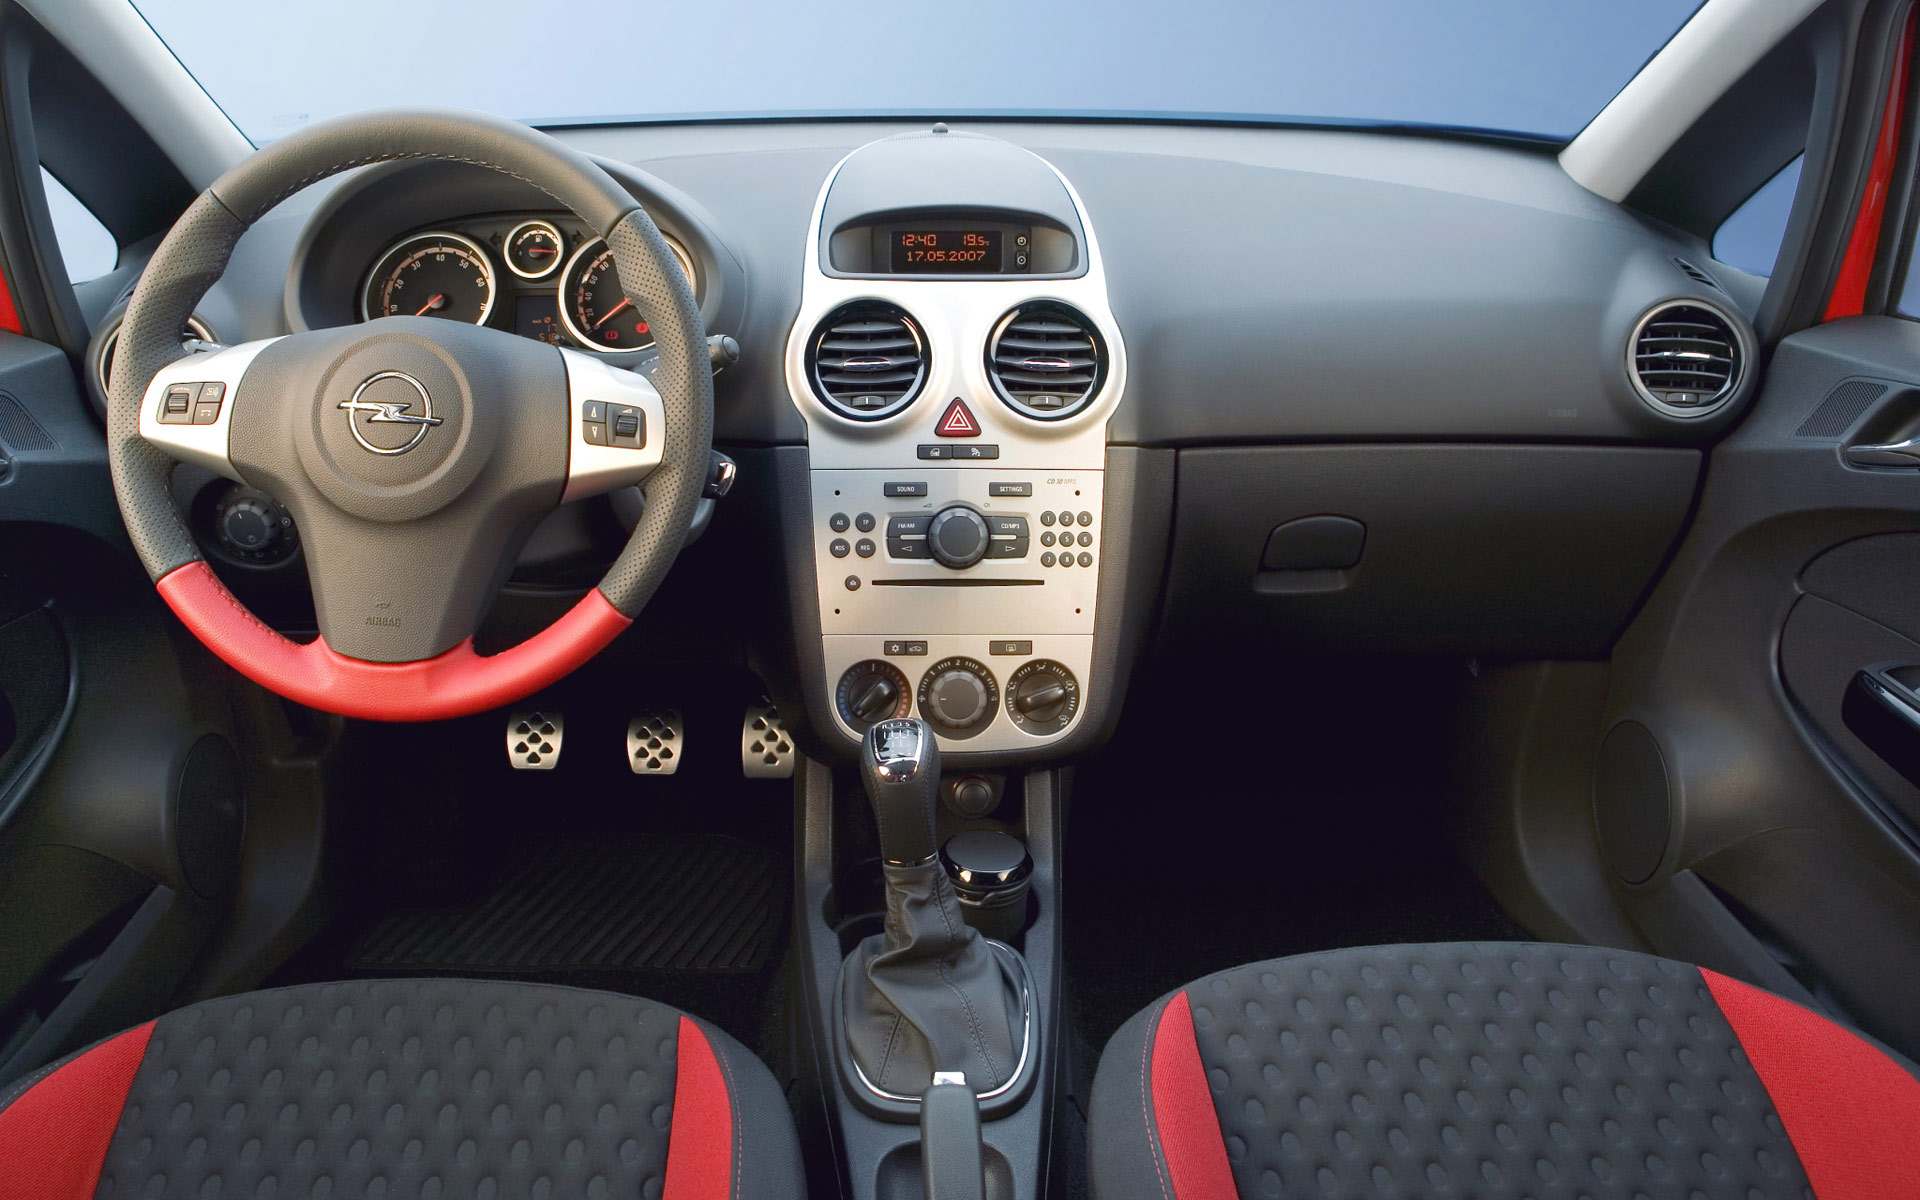 http://auto-database.com/image/pictures-of-opel-corsa-d-2007-115614.jpg